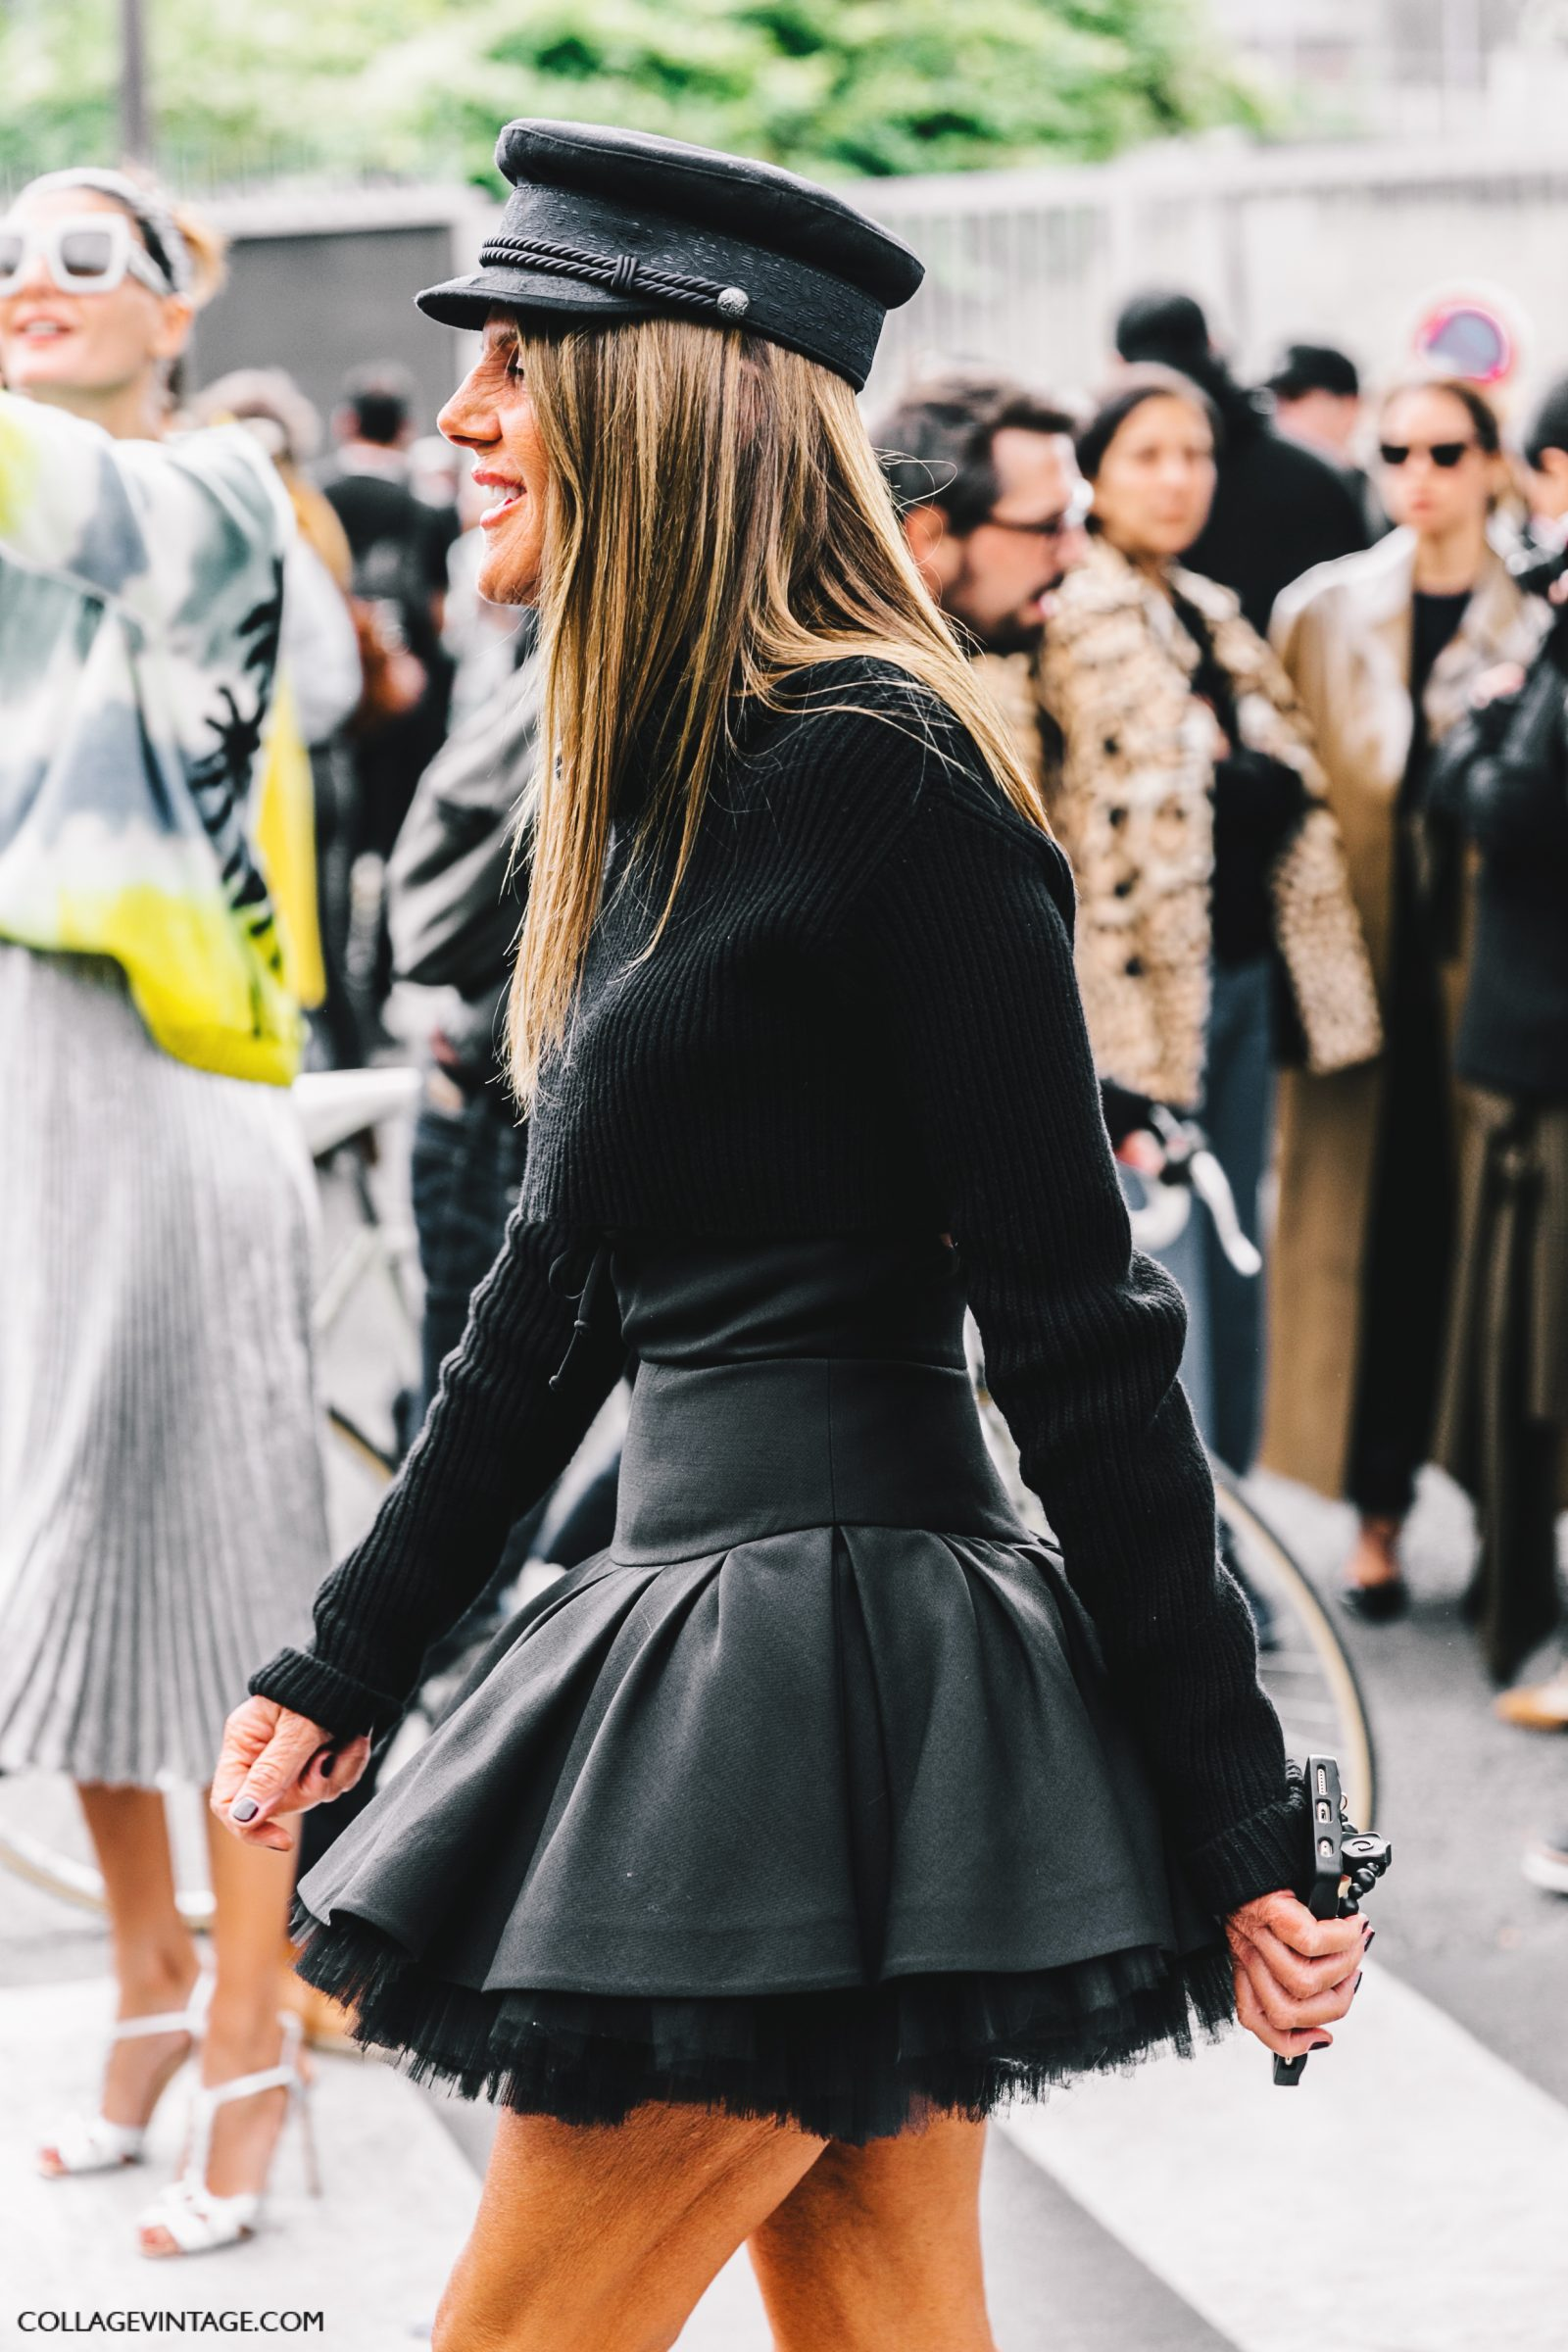 pfw-paris_fashion_week_ss17-street_style-outfits-collage_vintage-valentino-balenciaga-celine-36